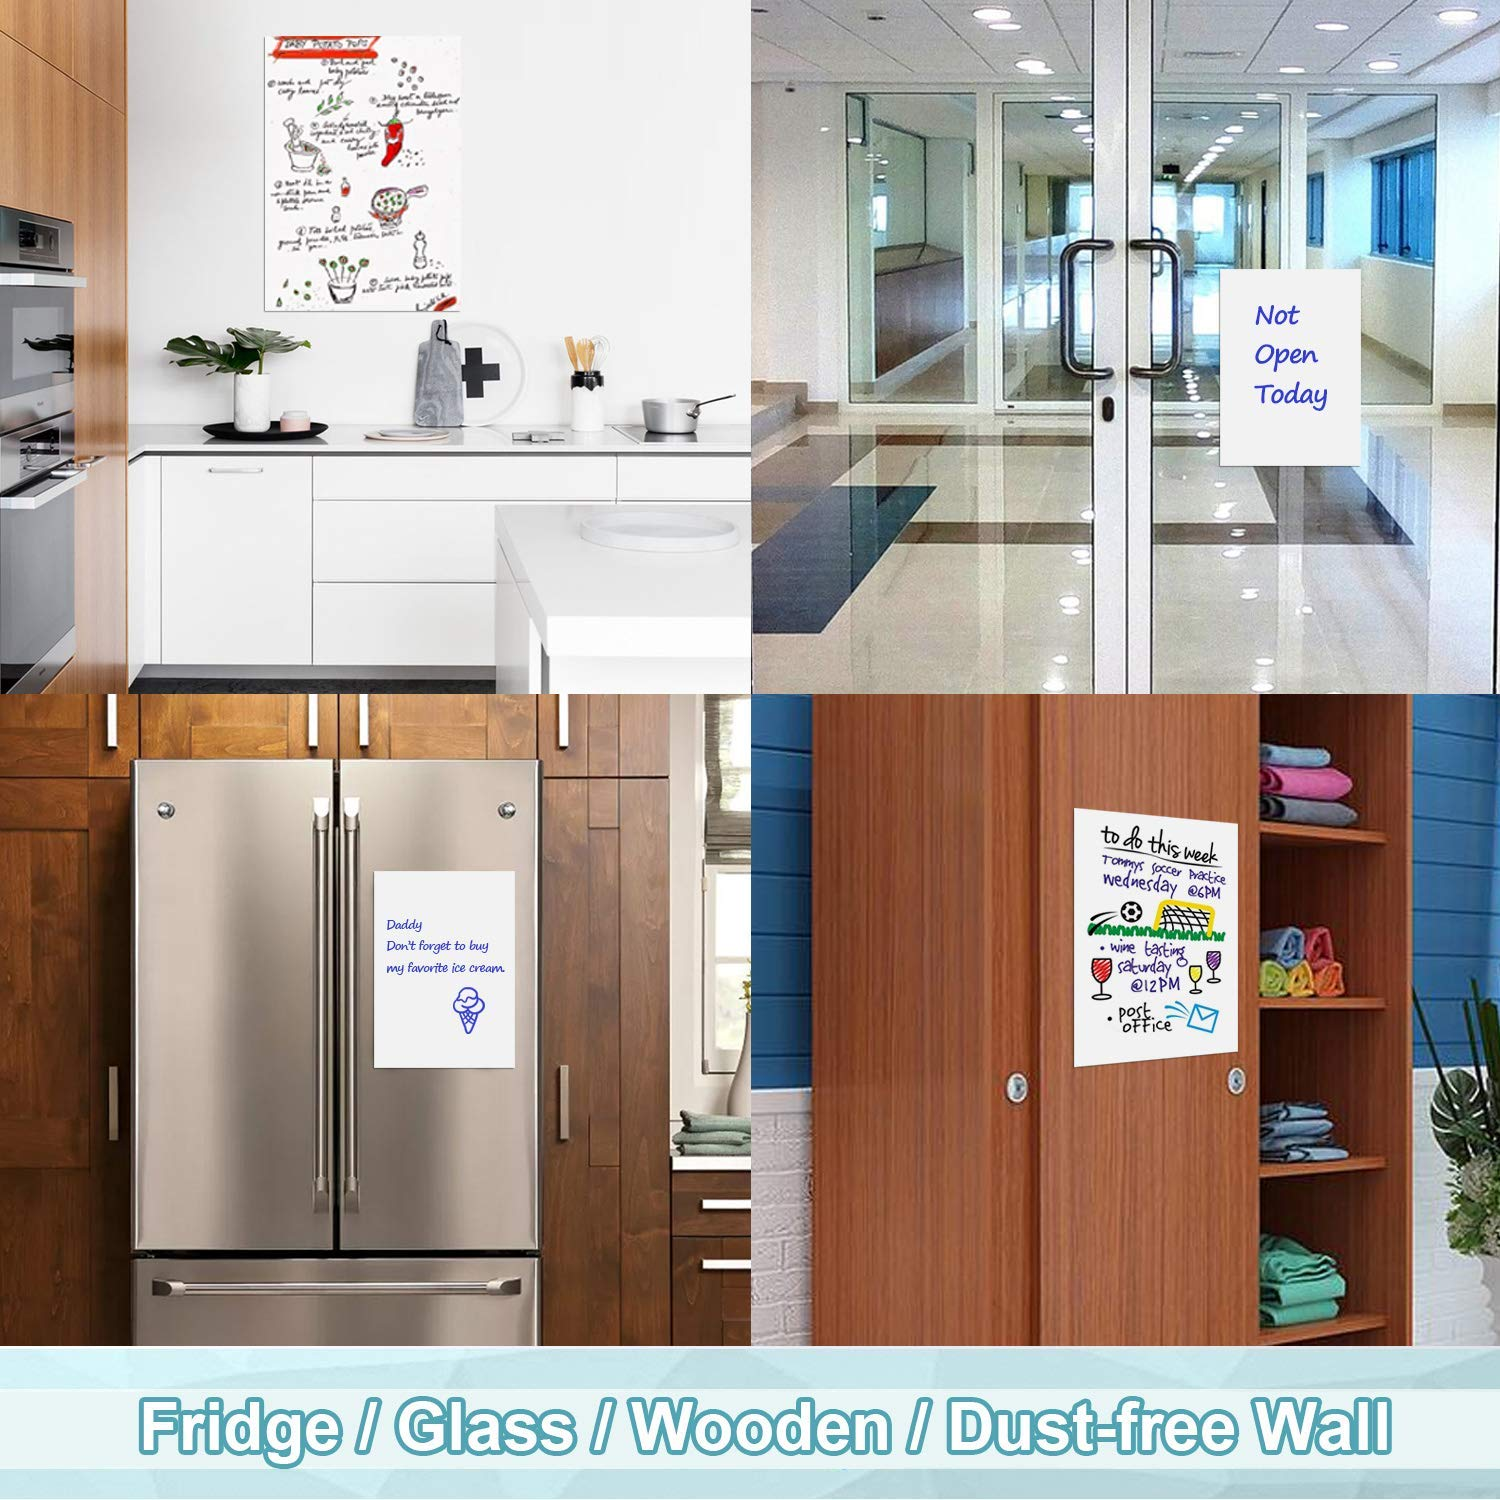 Wooden WOBEECO 2 Packs Dry Erase Board//Whiteboard 17x11 inch for Kitchen Fridge Dust-Free Wall Removable /& Tailorable Notice Board- 7 Magnetic Markers Glass 3 x Magnets Included